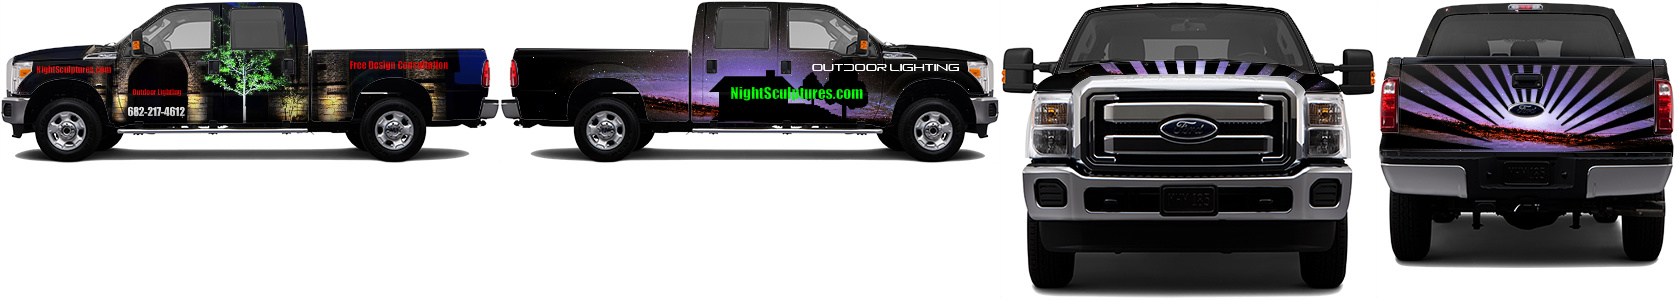 truck wrap custom design 26878 by new designer 29970 design your own truck wrap custom. Black Bedroom Furniture Sets. Home Design Ideas